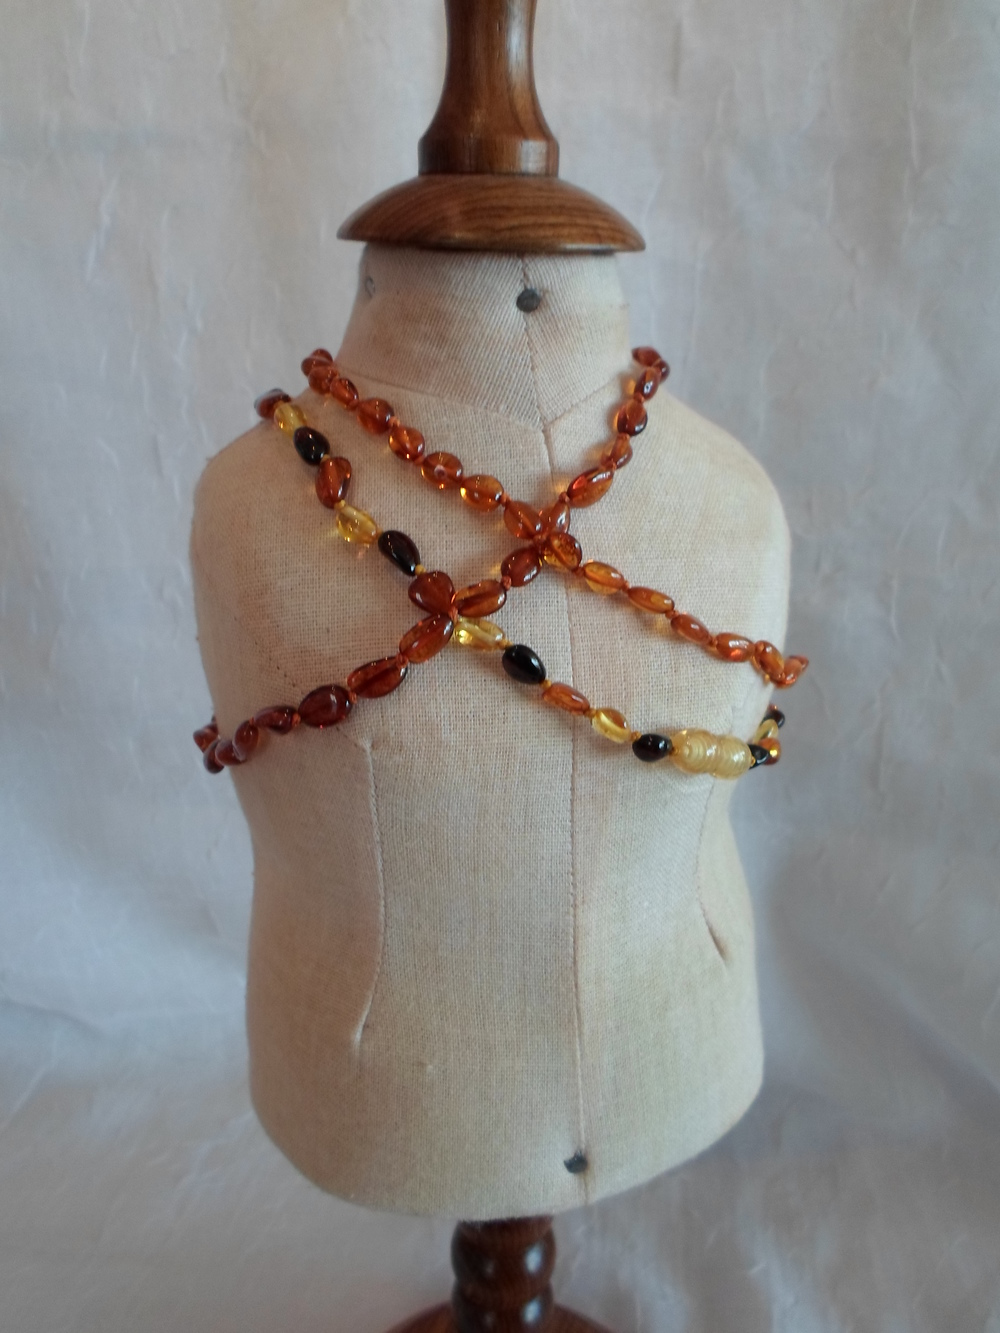 Amber Teething Necklace for Baby- solid color $21 Wants 1 - PURCHASED